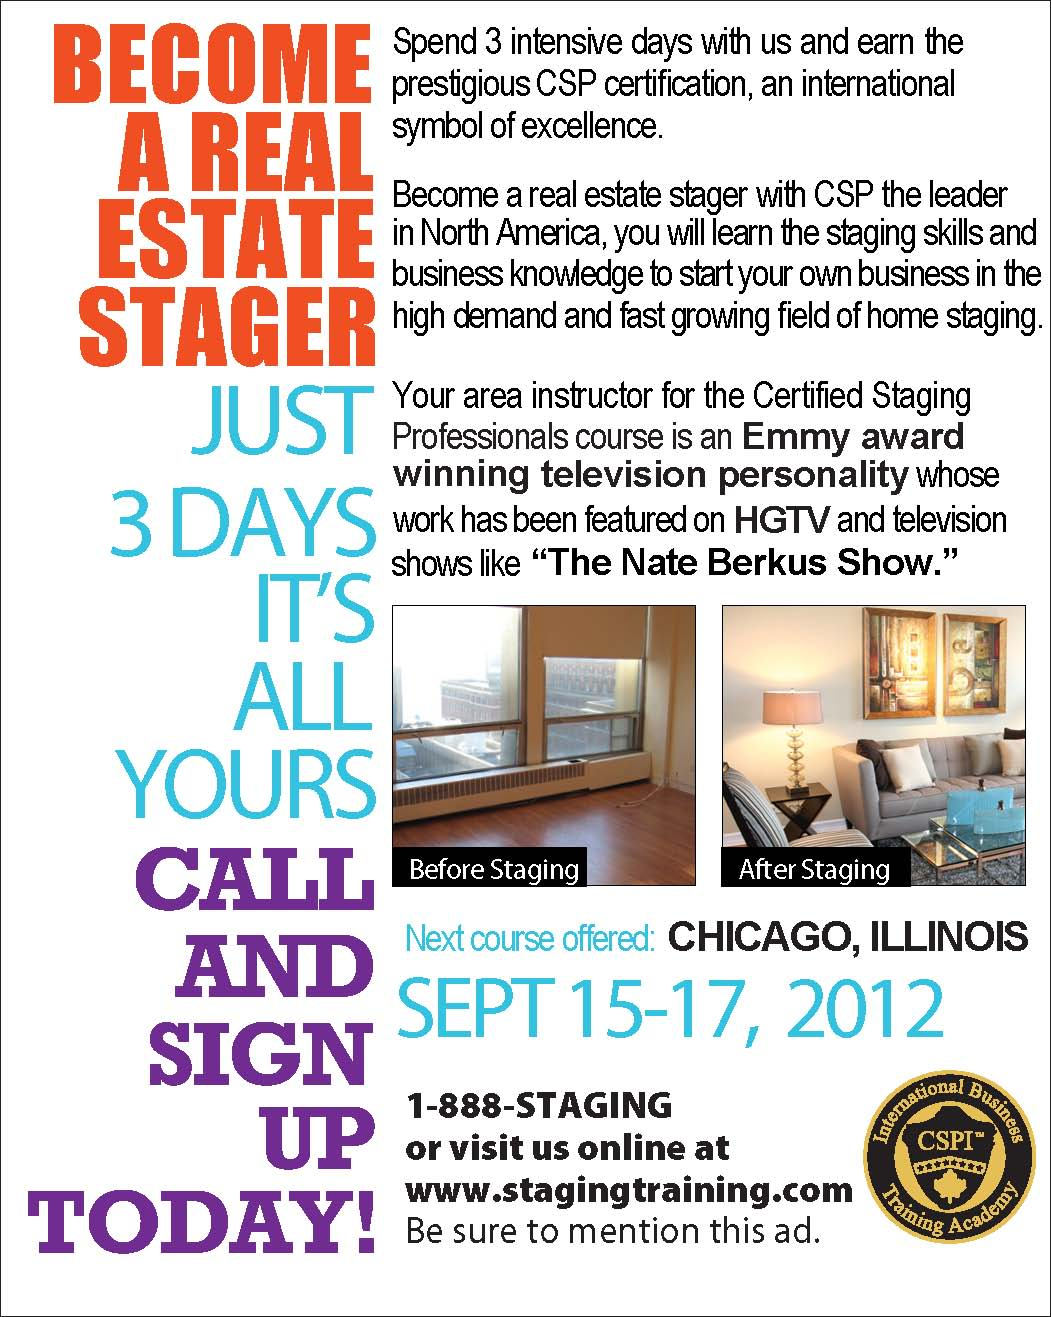 CELEBRITY INTERIOR DESIGNER CATHY HOBBS OF DESIGN RECIPES AND THE CERTIFIED STAGING PROFESSIONALS CSP COURSE FEATURED ON LOCAL TV PROGRAM